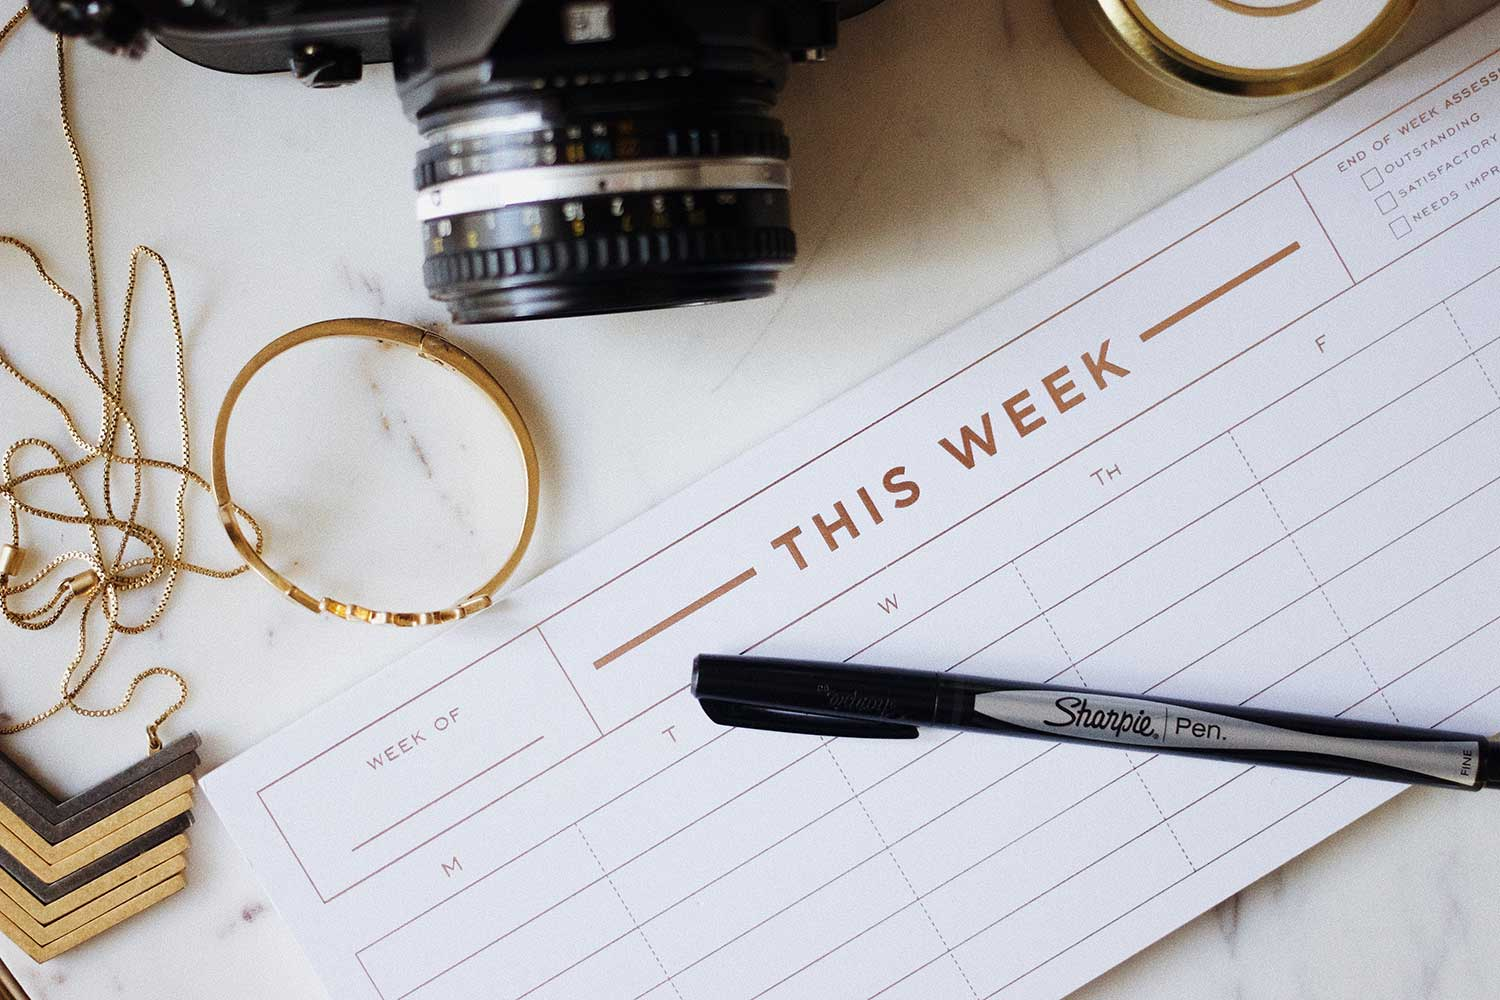 Weekly planner to help time management